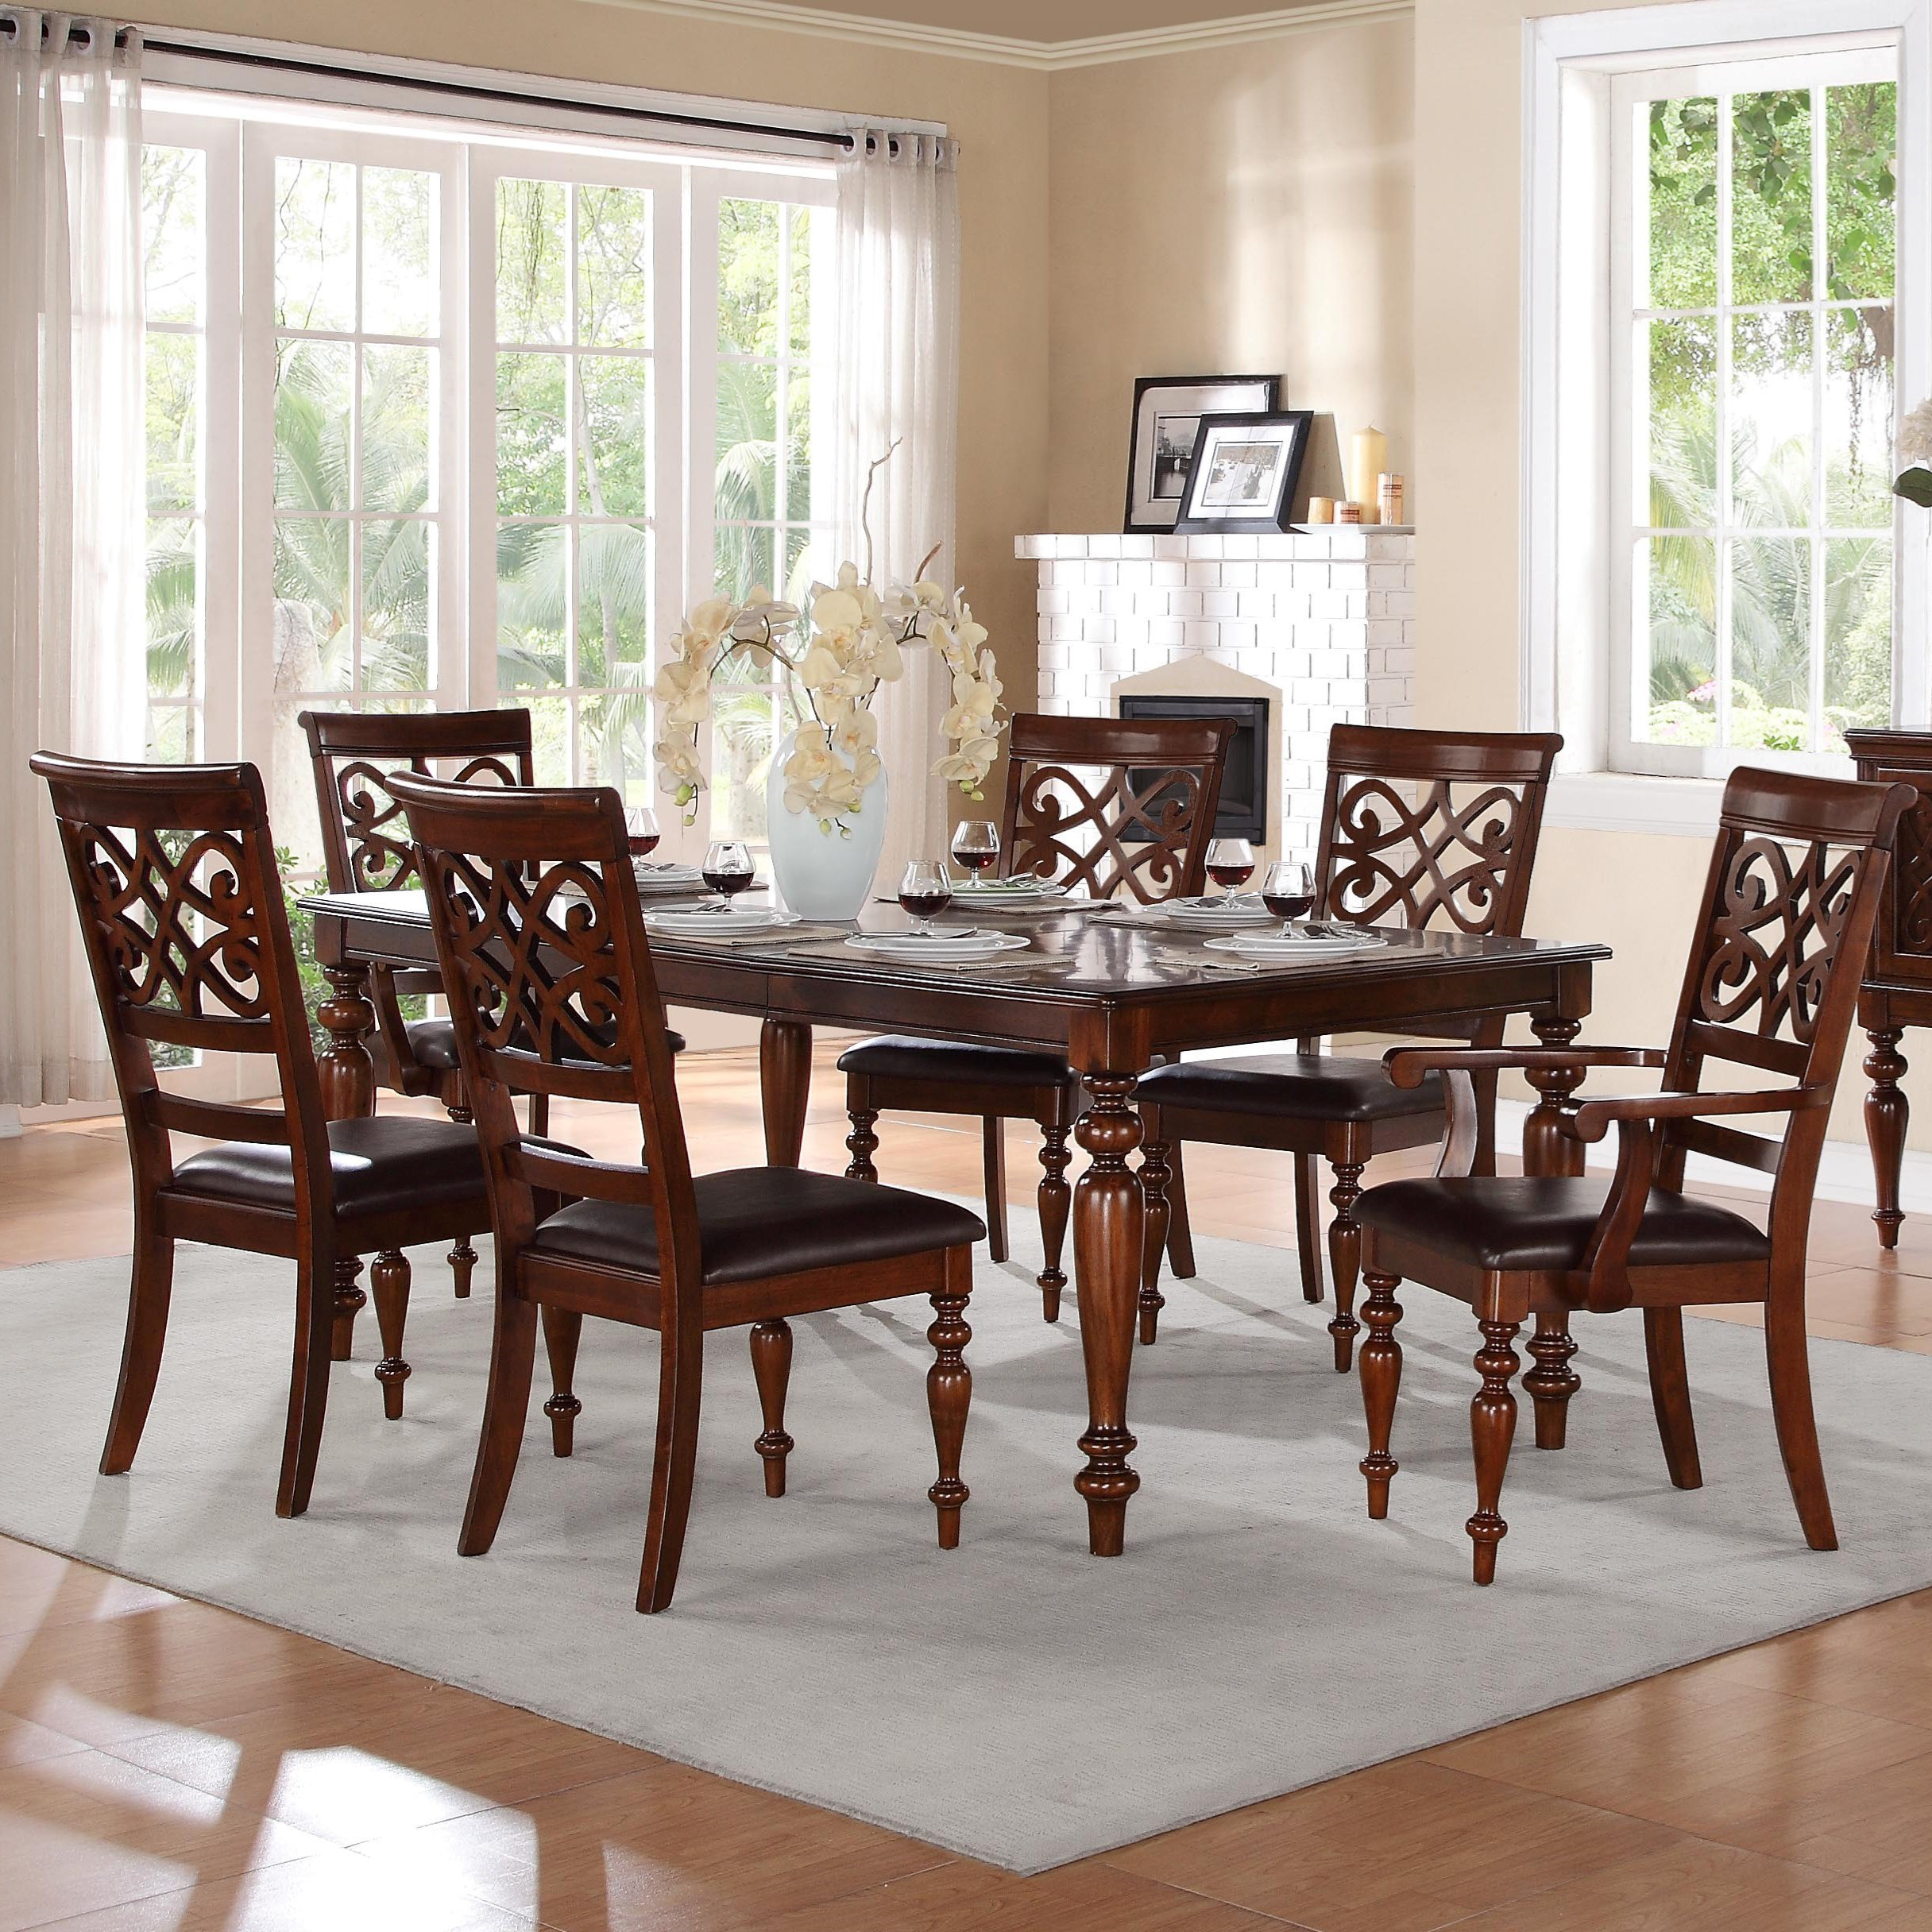 Ashley Furniture In Woodbridge Nj: Homelegance Creswell Traditional Table And Chair Set With